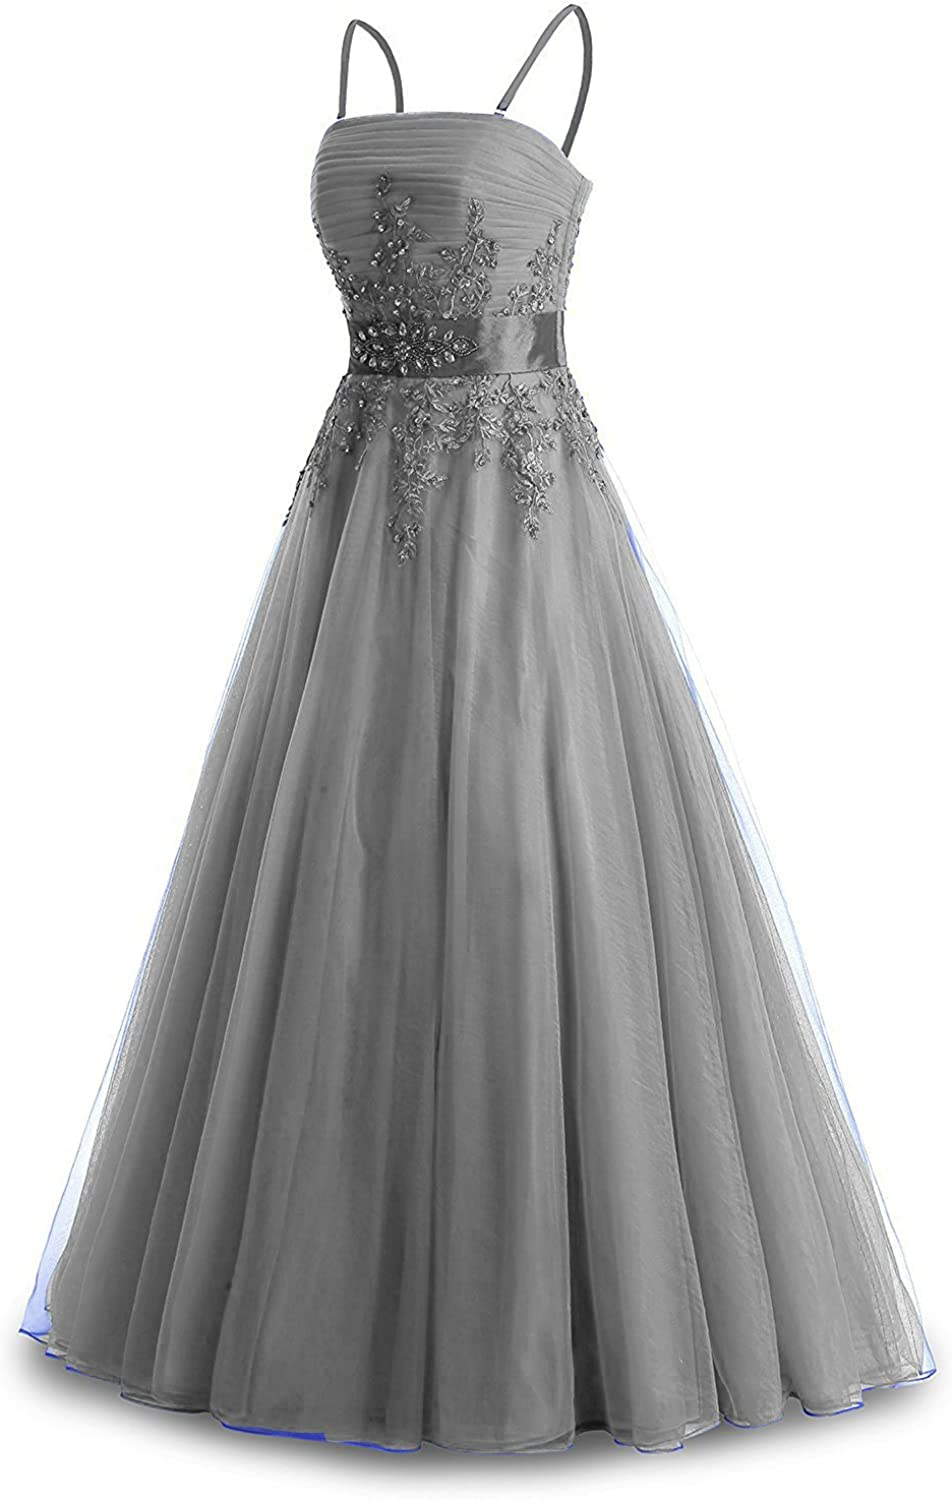 Lemai Beaded Long A Line Prom Dress Evening Party Gowns Lace Appliques